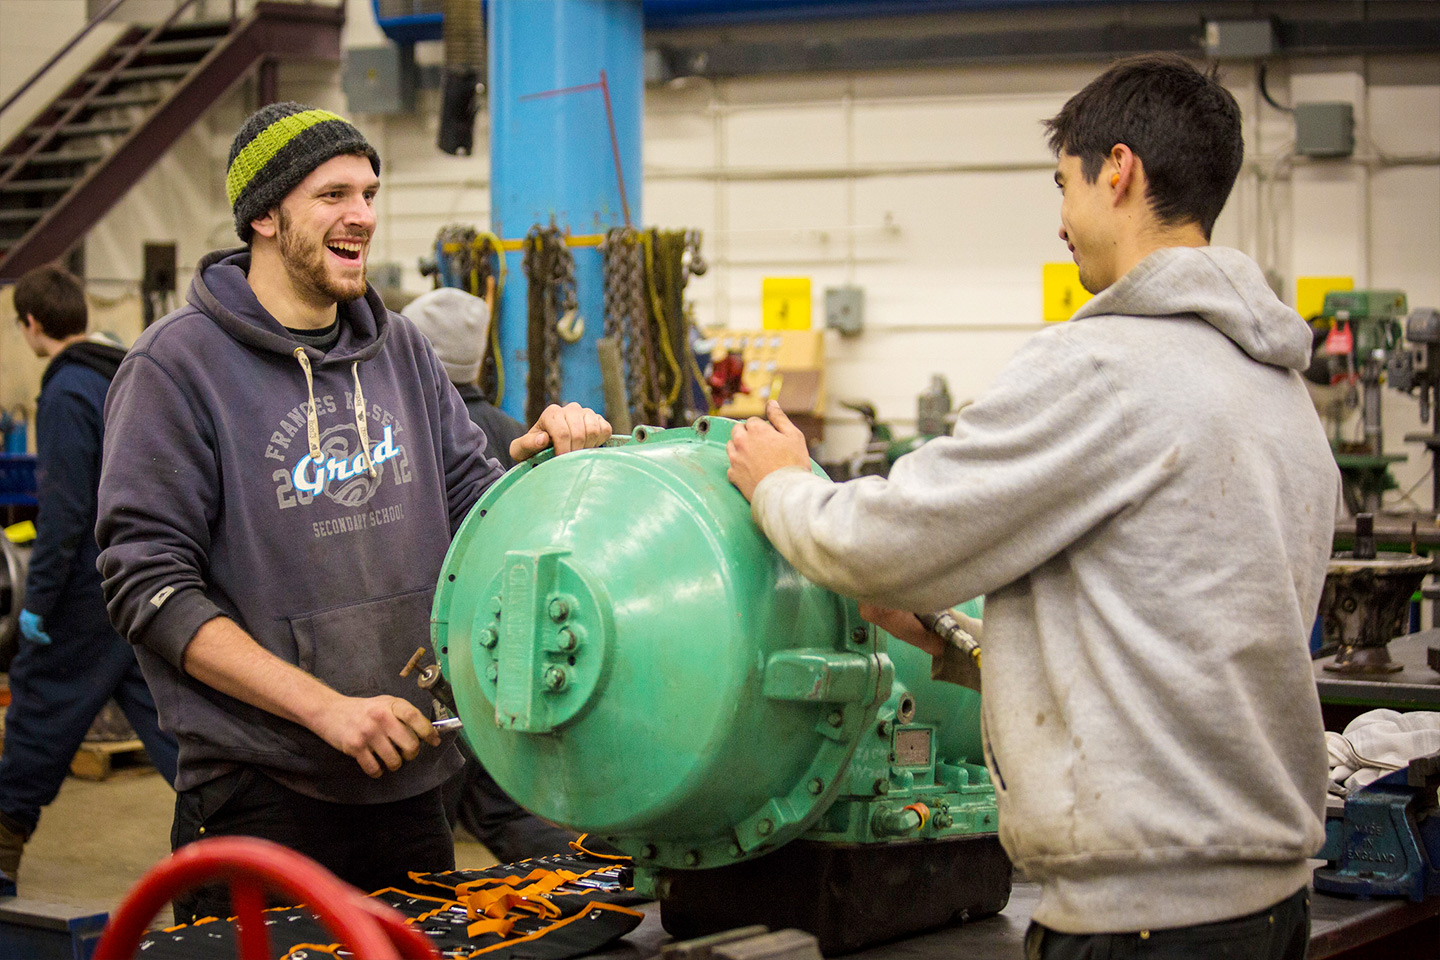 Automotive Service Technician Foundations students smile as they work on an genine